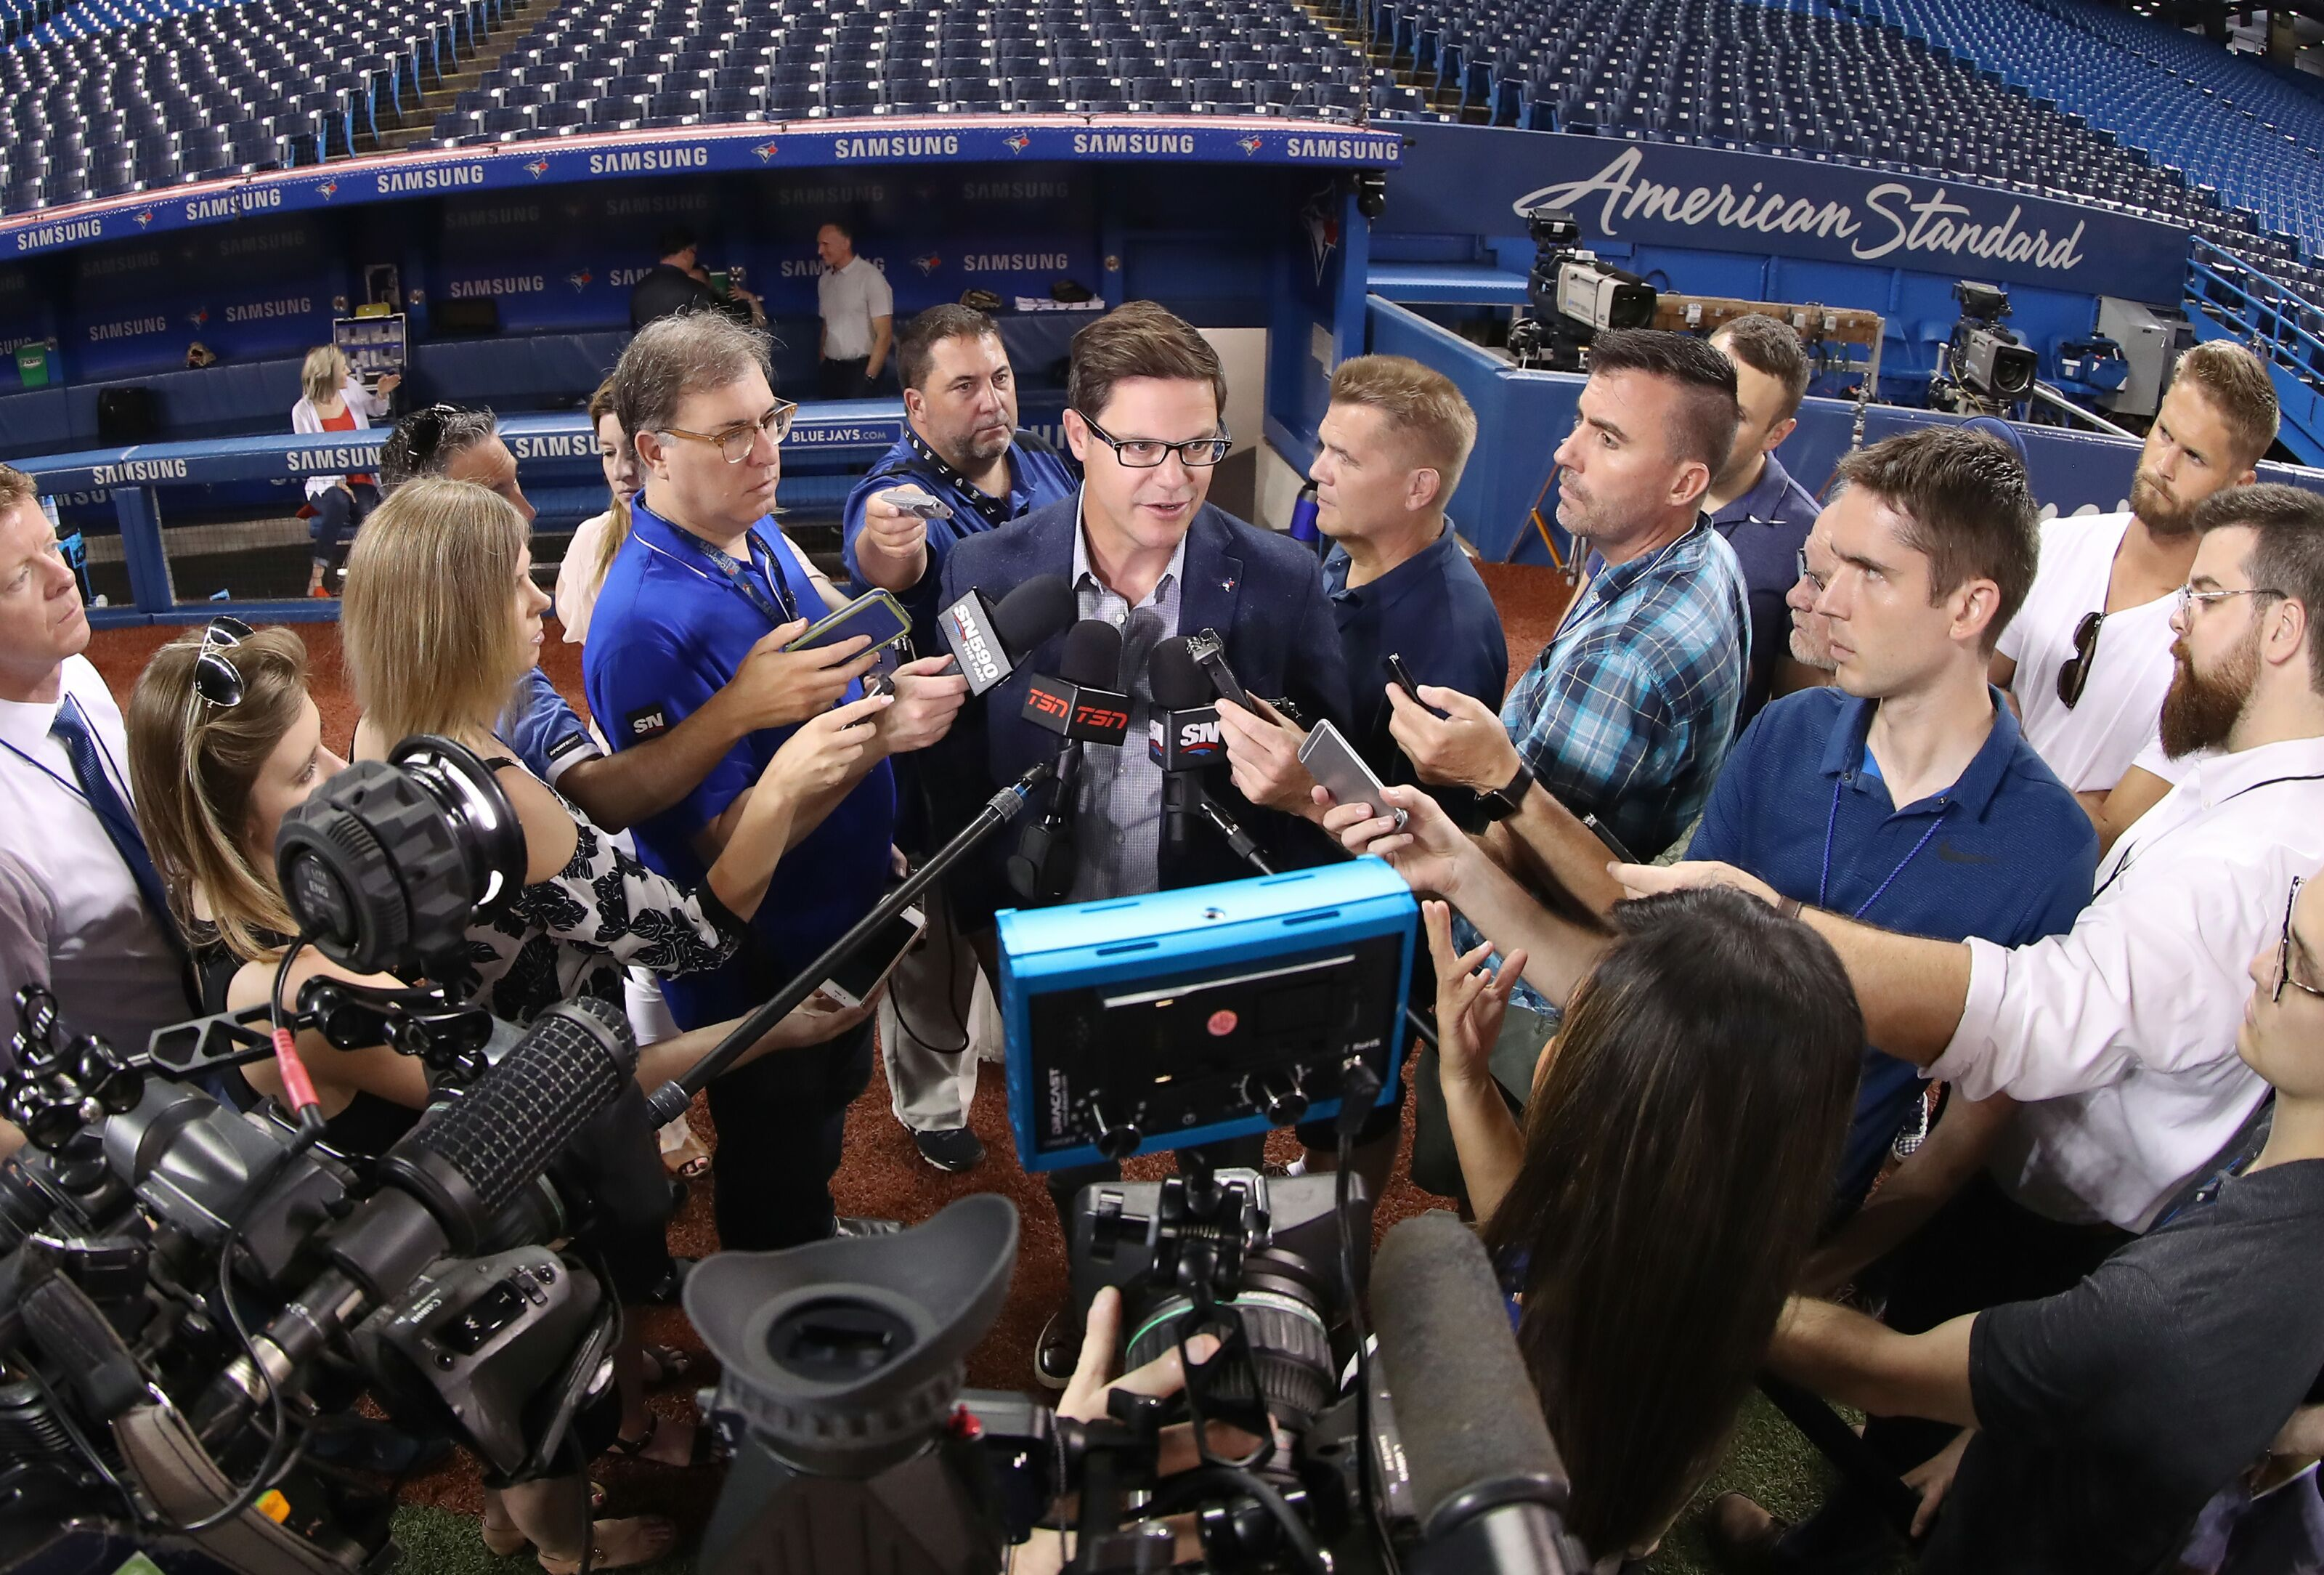 Blue Jays: Looking back on Ross Atkins' work from the 2016 season